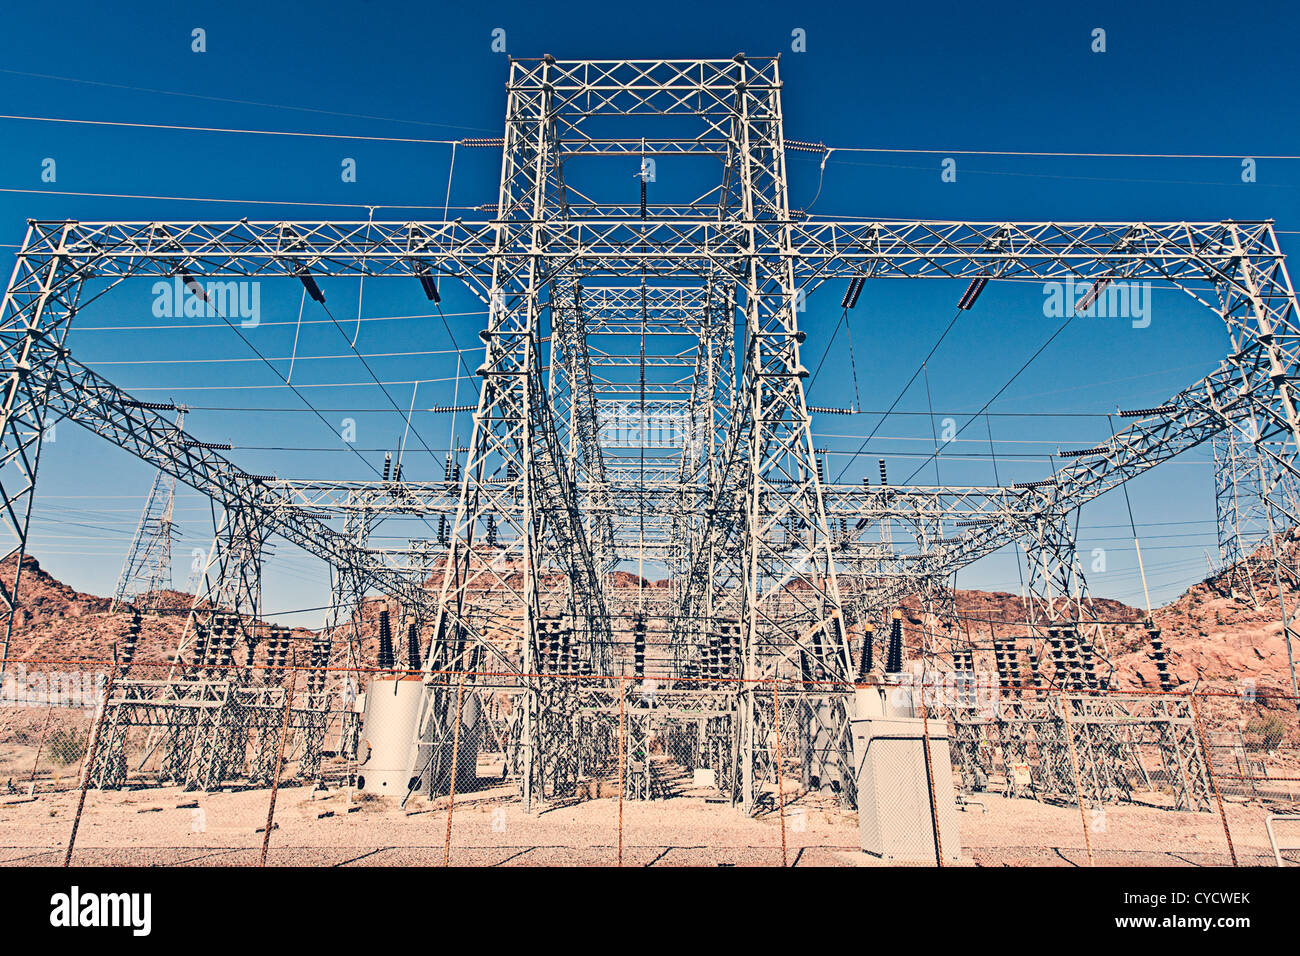 Electricity Pylon in Hoover Dam, Nevada, USA - Stock Image